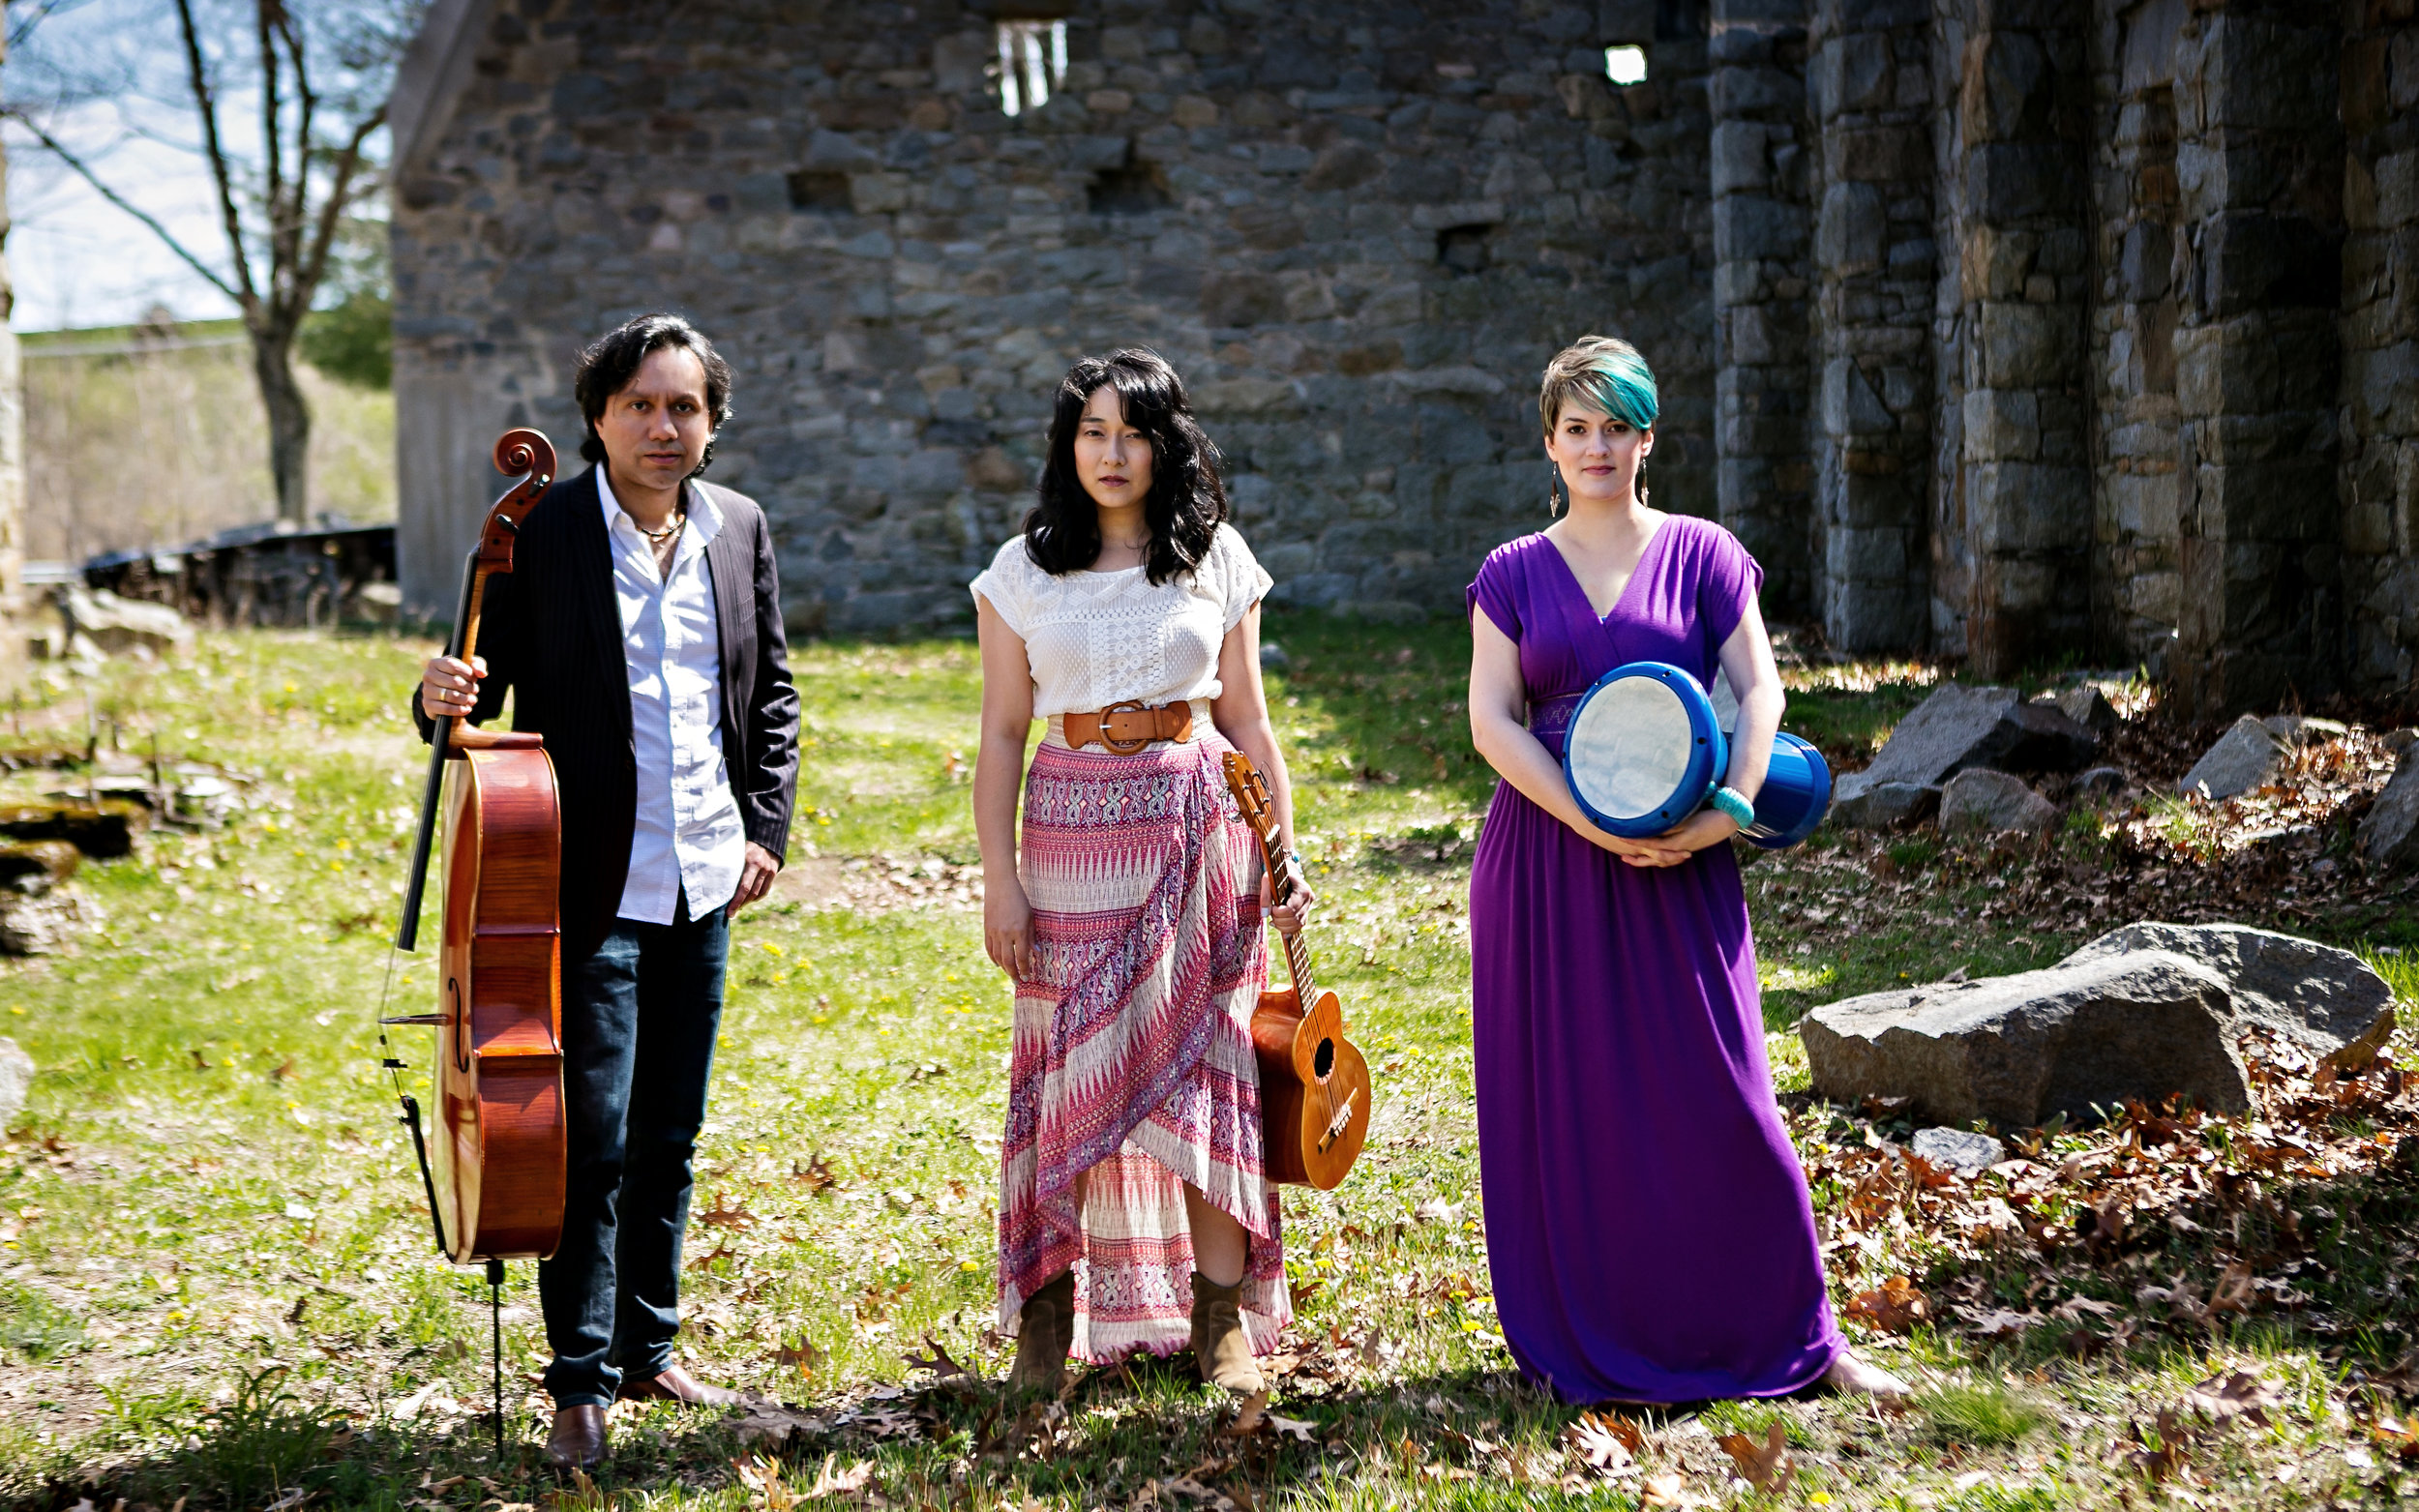 Voci Angelica Trio - Voci Angelica Trio is an international band with members hailing from three continents. Listeners describe the music as